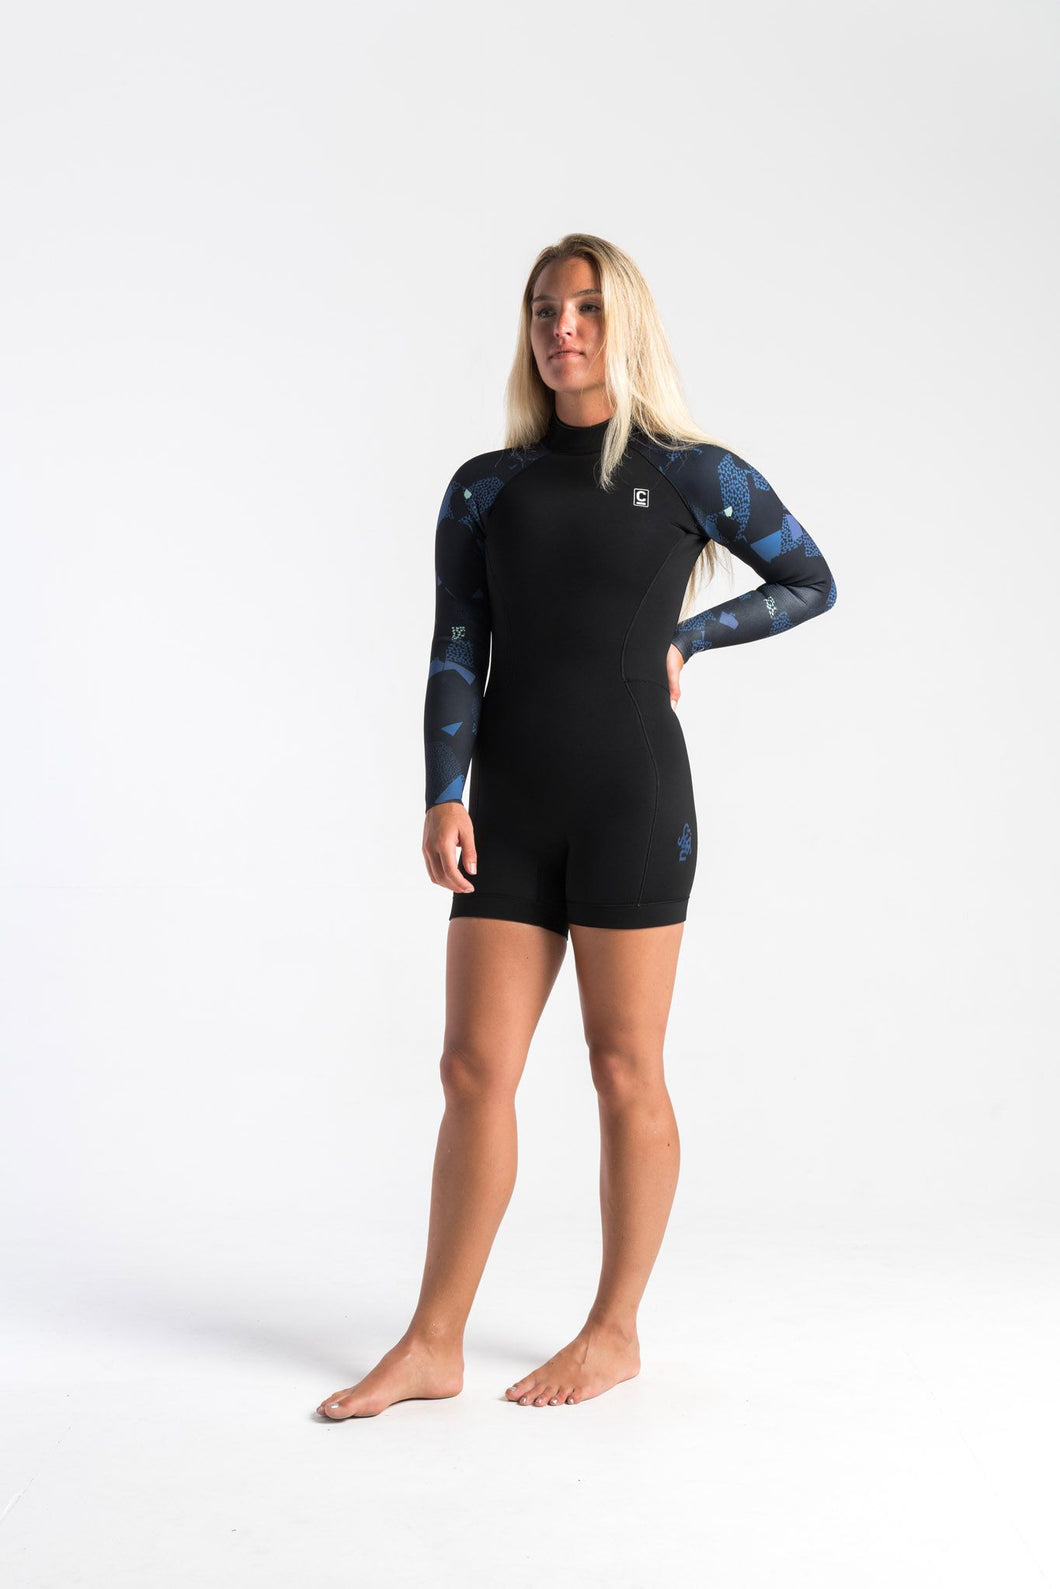 C-Skins Solace Women's 3/2mm Boyleg Spring Wetsuit